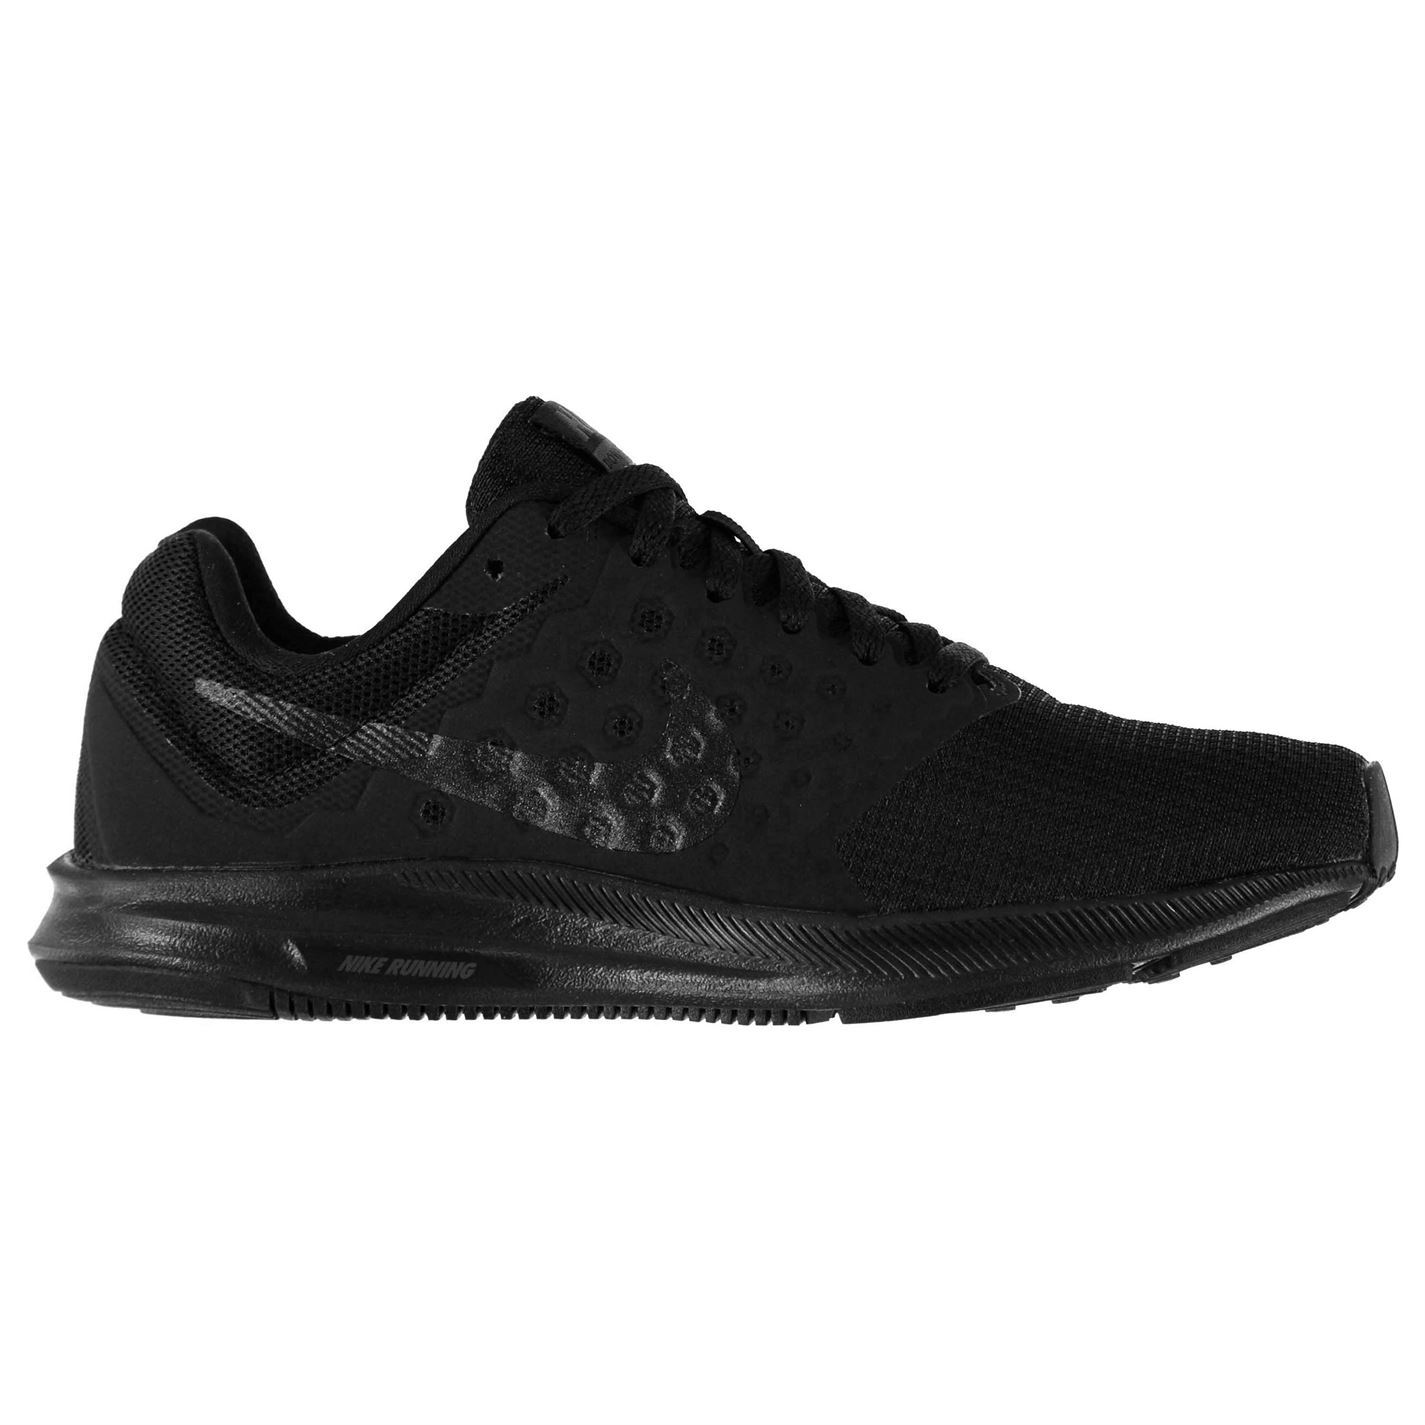 ... Nike Downshifter 7 Trainers Womens Black/Grey Sneakers Sports Shoes  Footwear ...